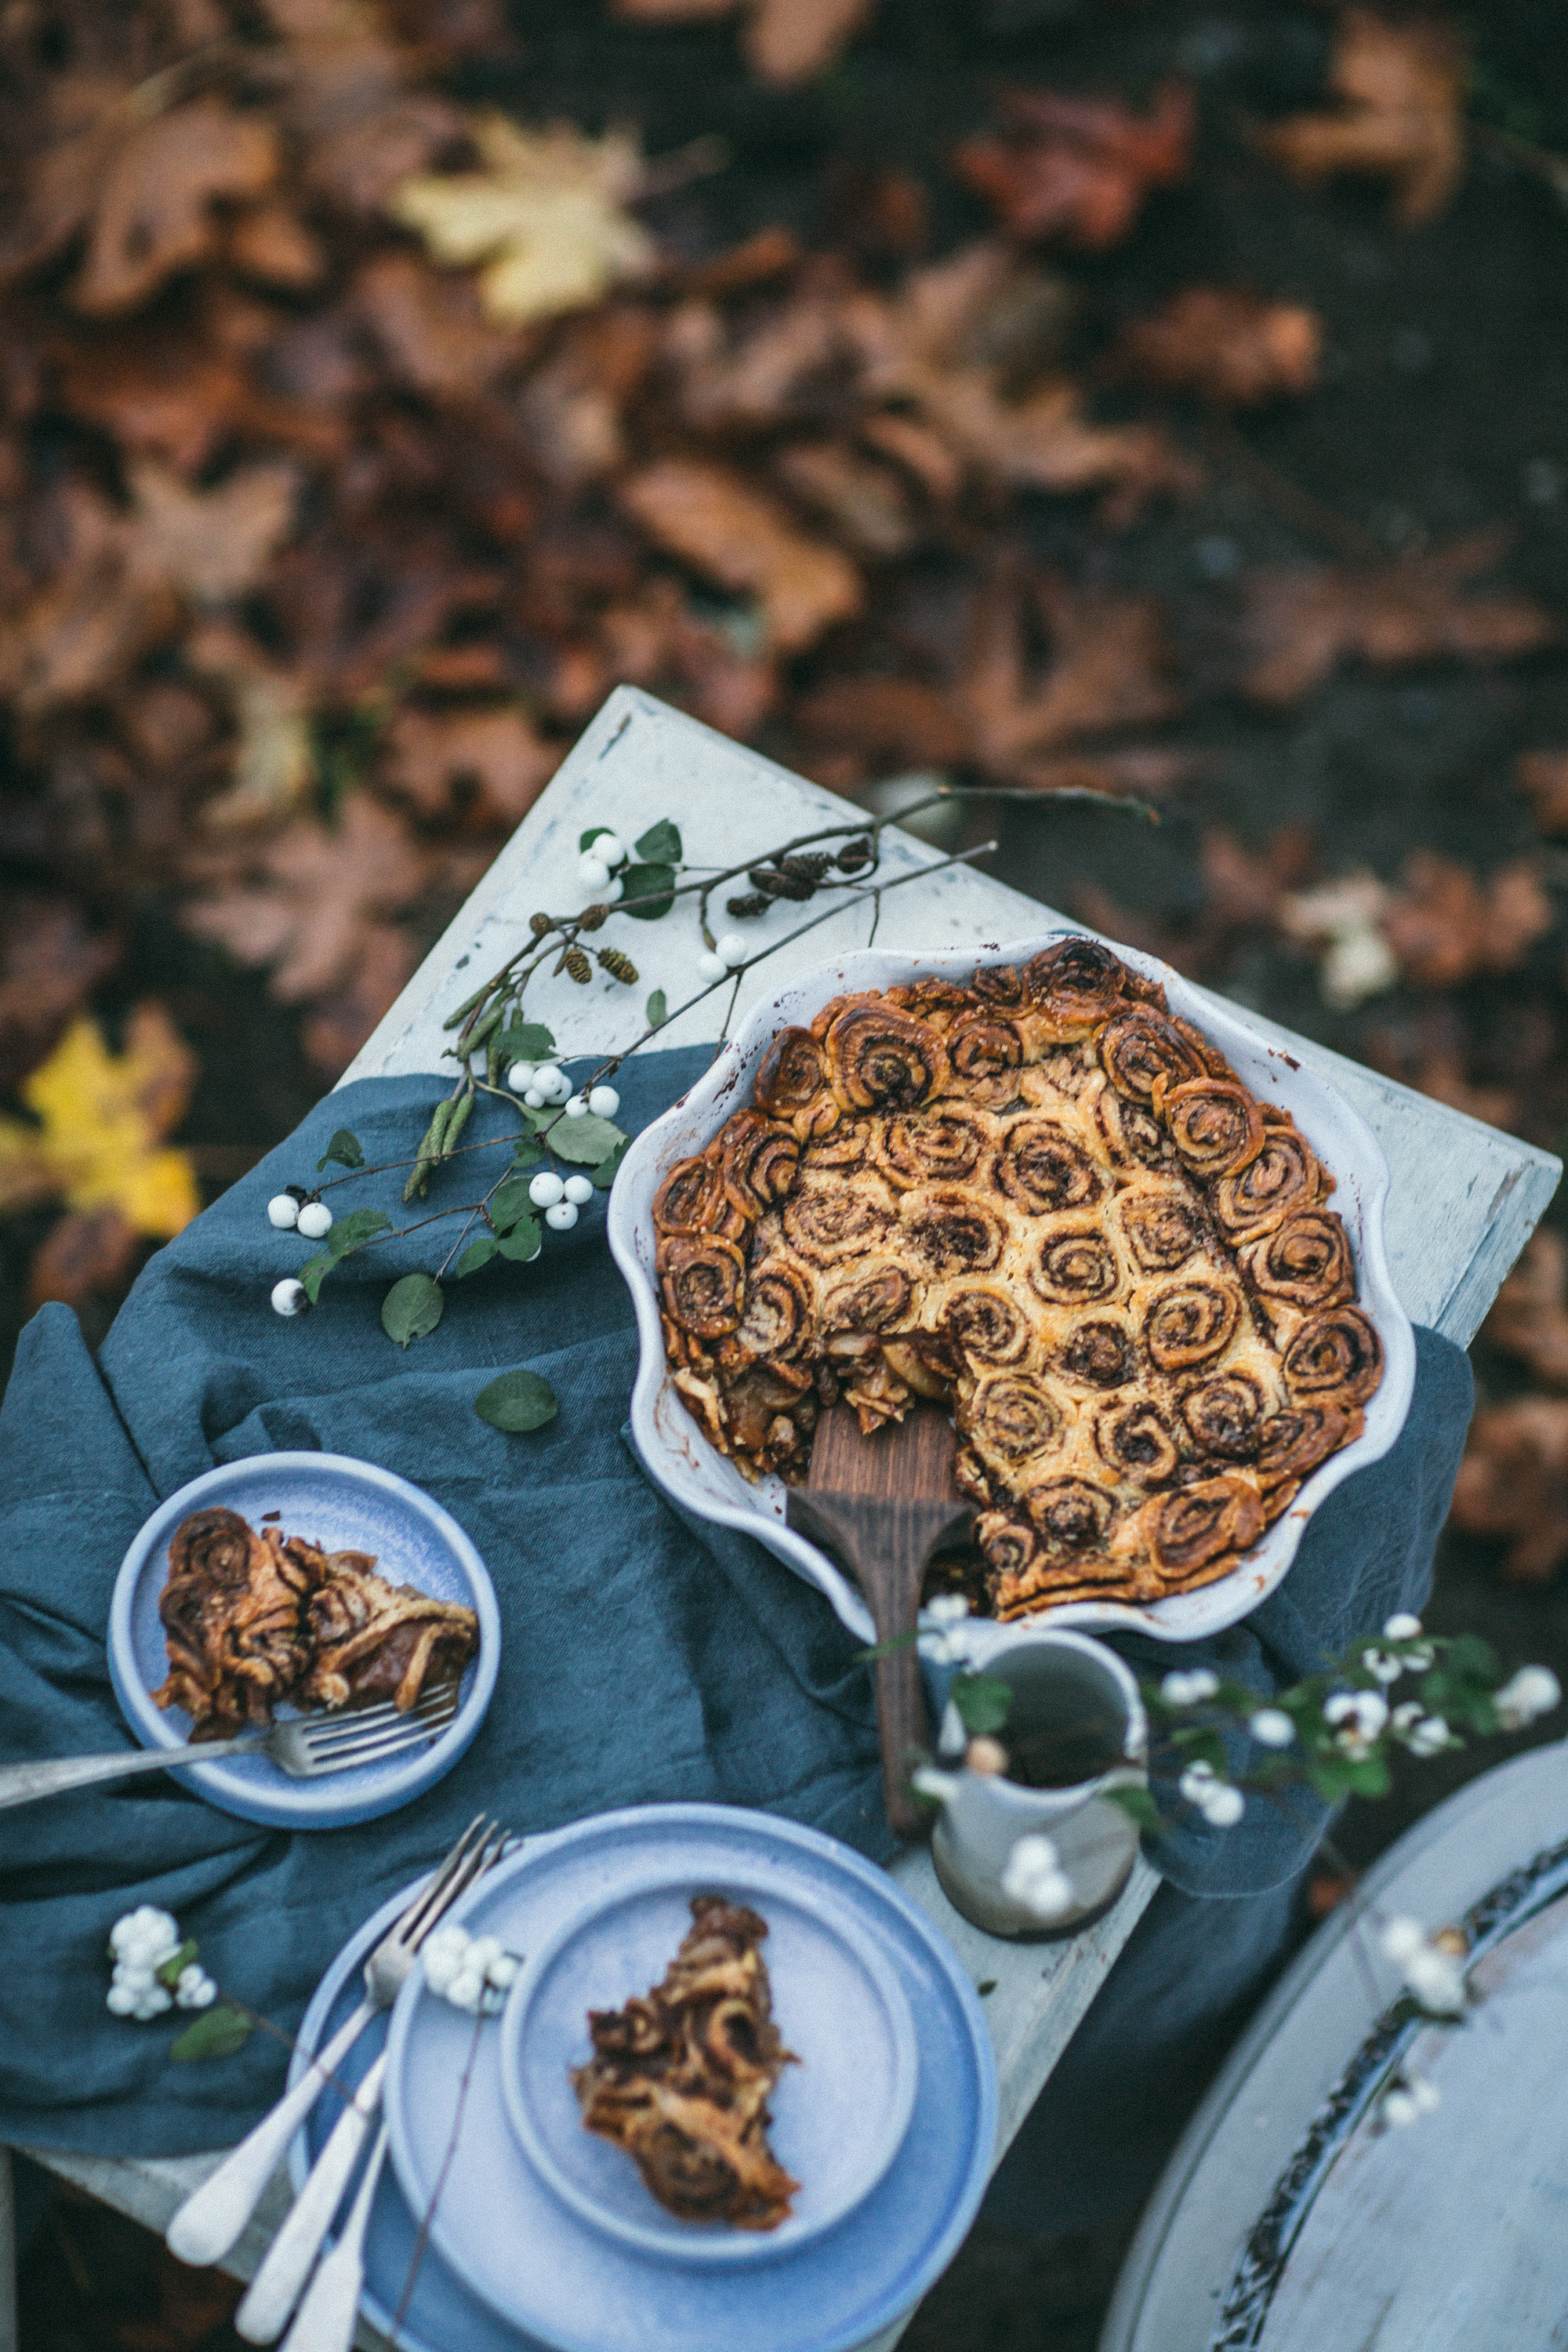 Cinnamon Roll Apple Pie from Lomelino's Pies by Eva Kosmas Flores and Tiffany of Oh Honey Bakes